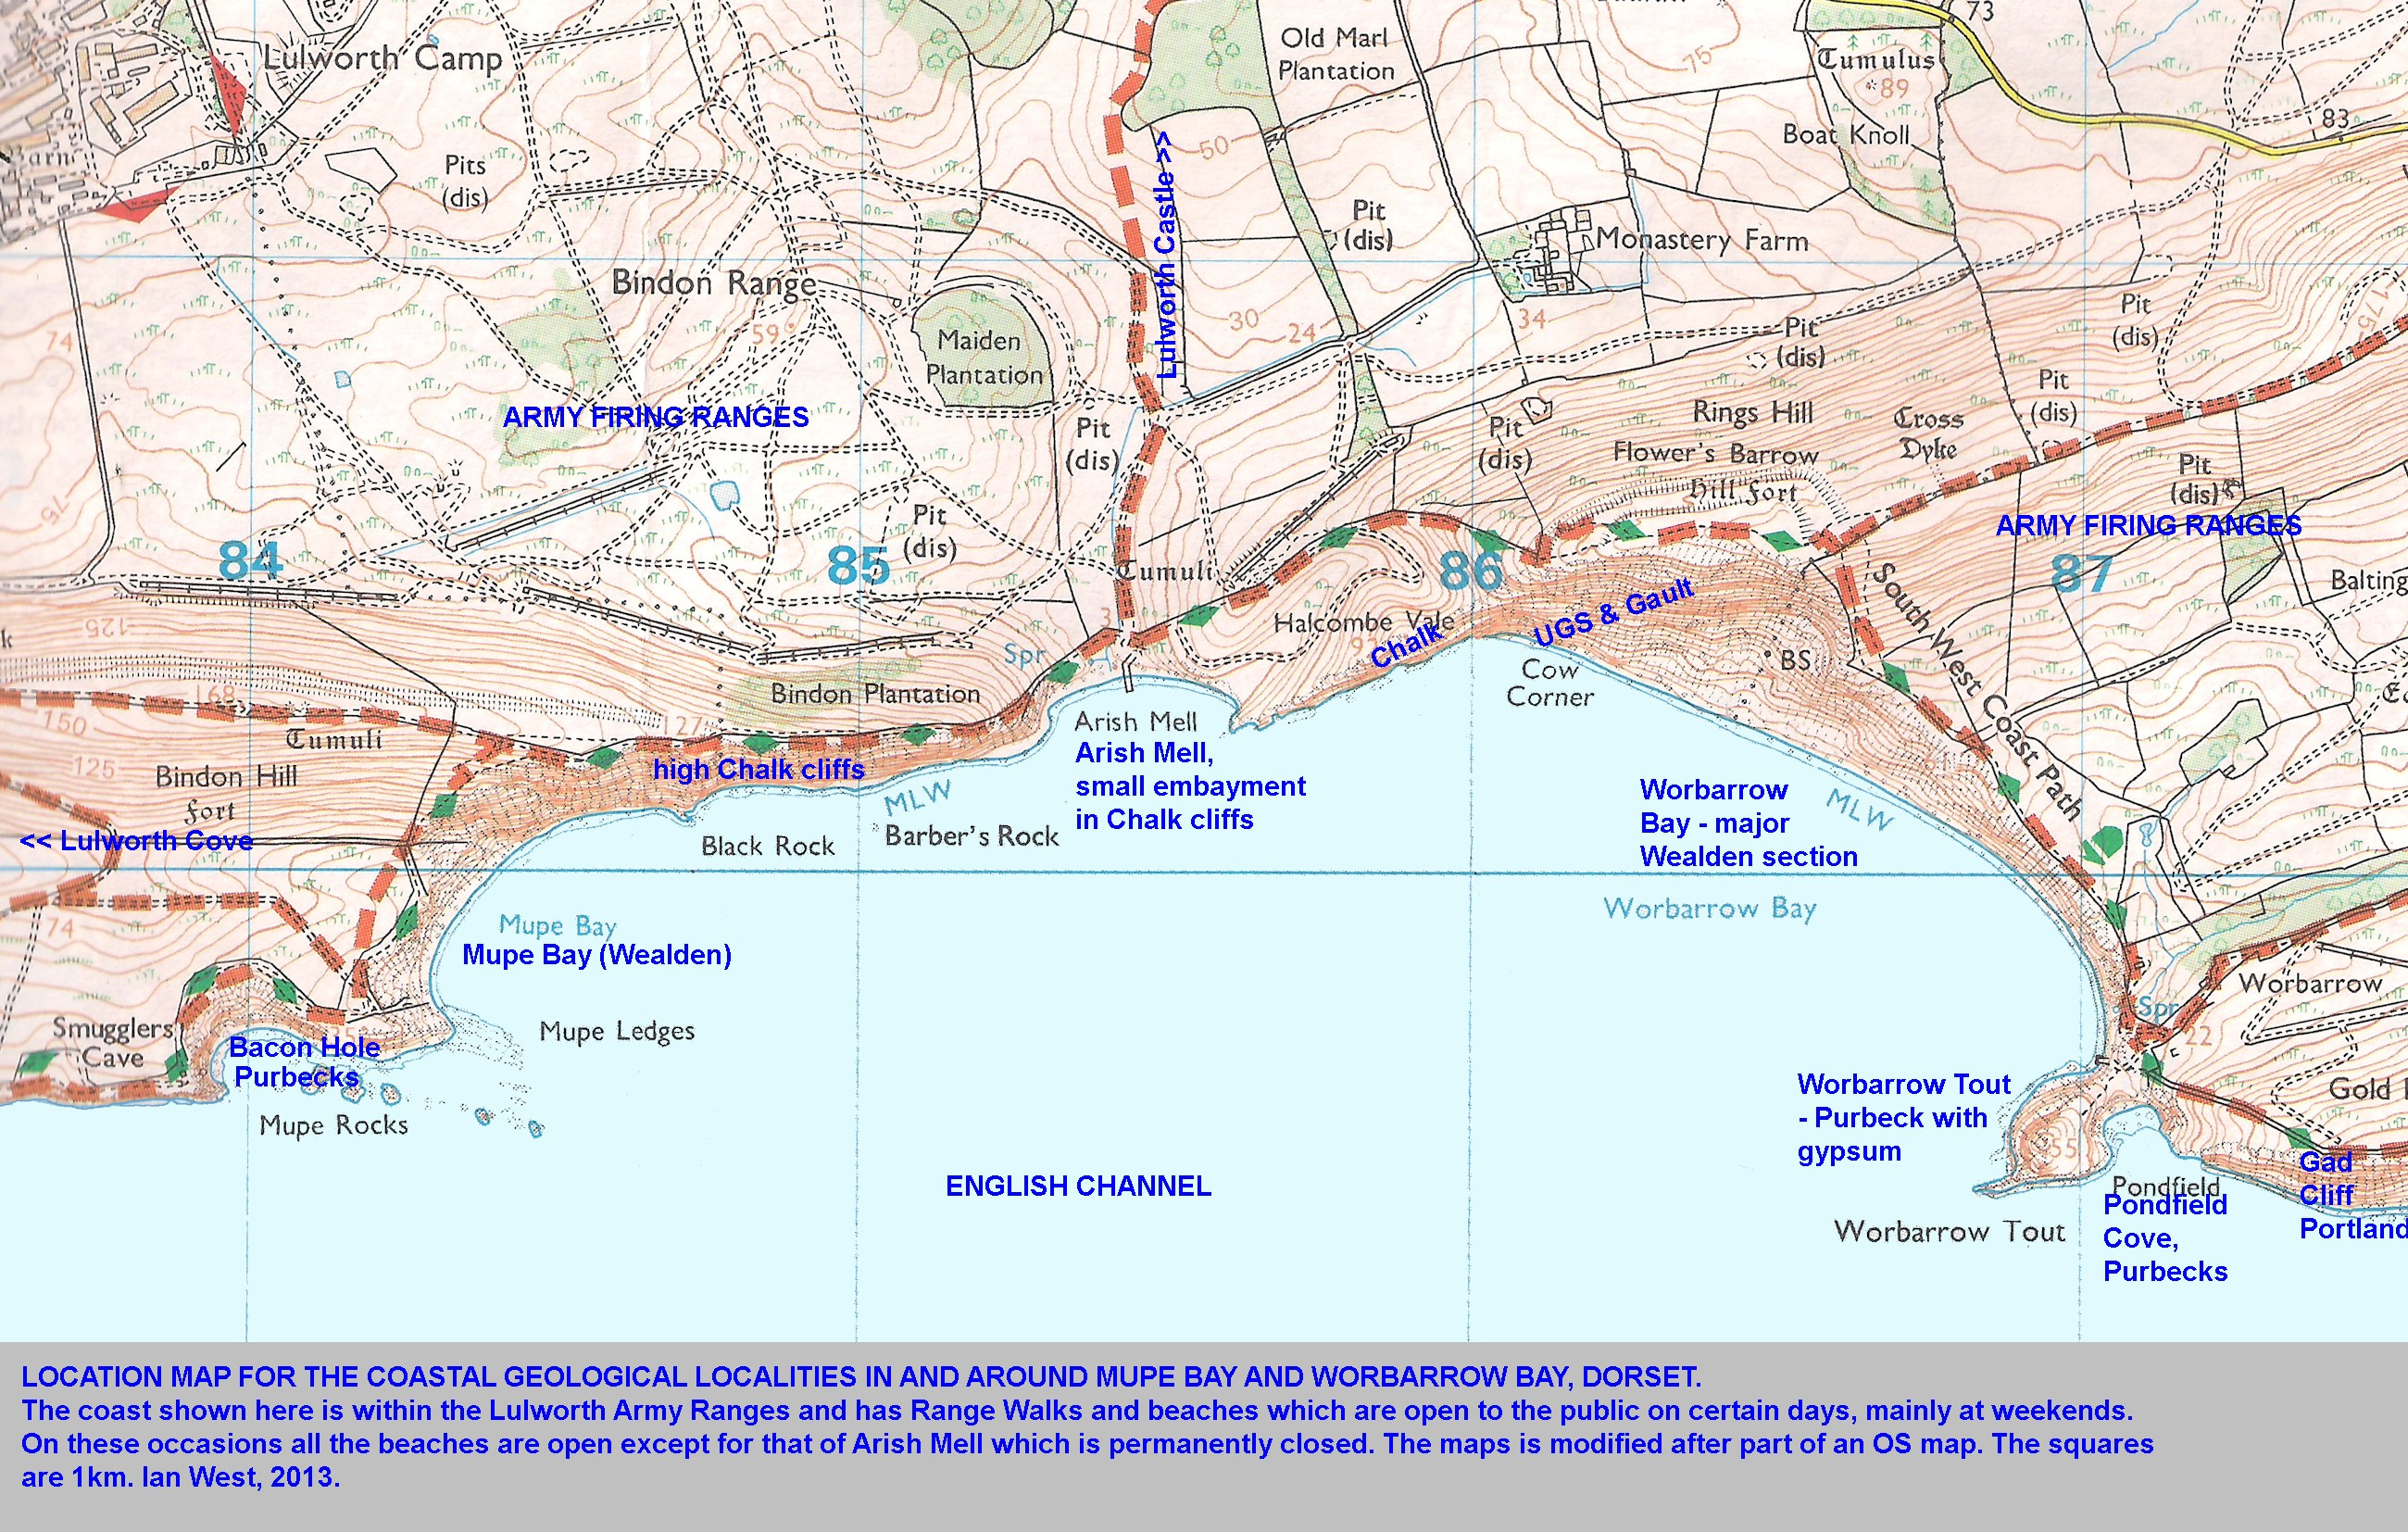 A location map showing the main geological localities around Mupe Bay Arish Mell Worbarrow  sc 1 st  University of South&ton & Mupe Bay and Bacon Hole - Geology by Ian West.